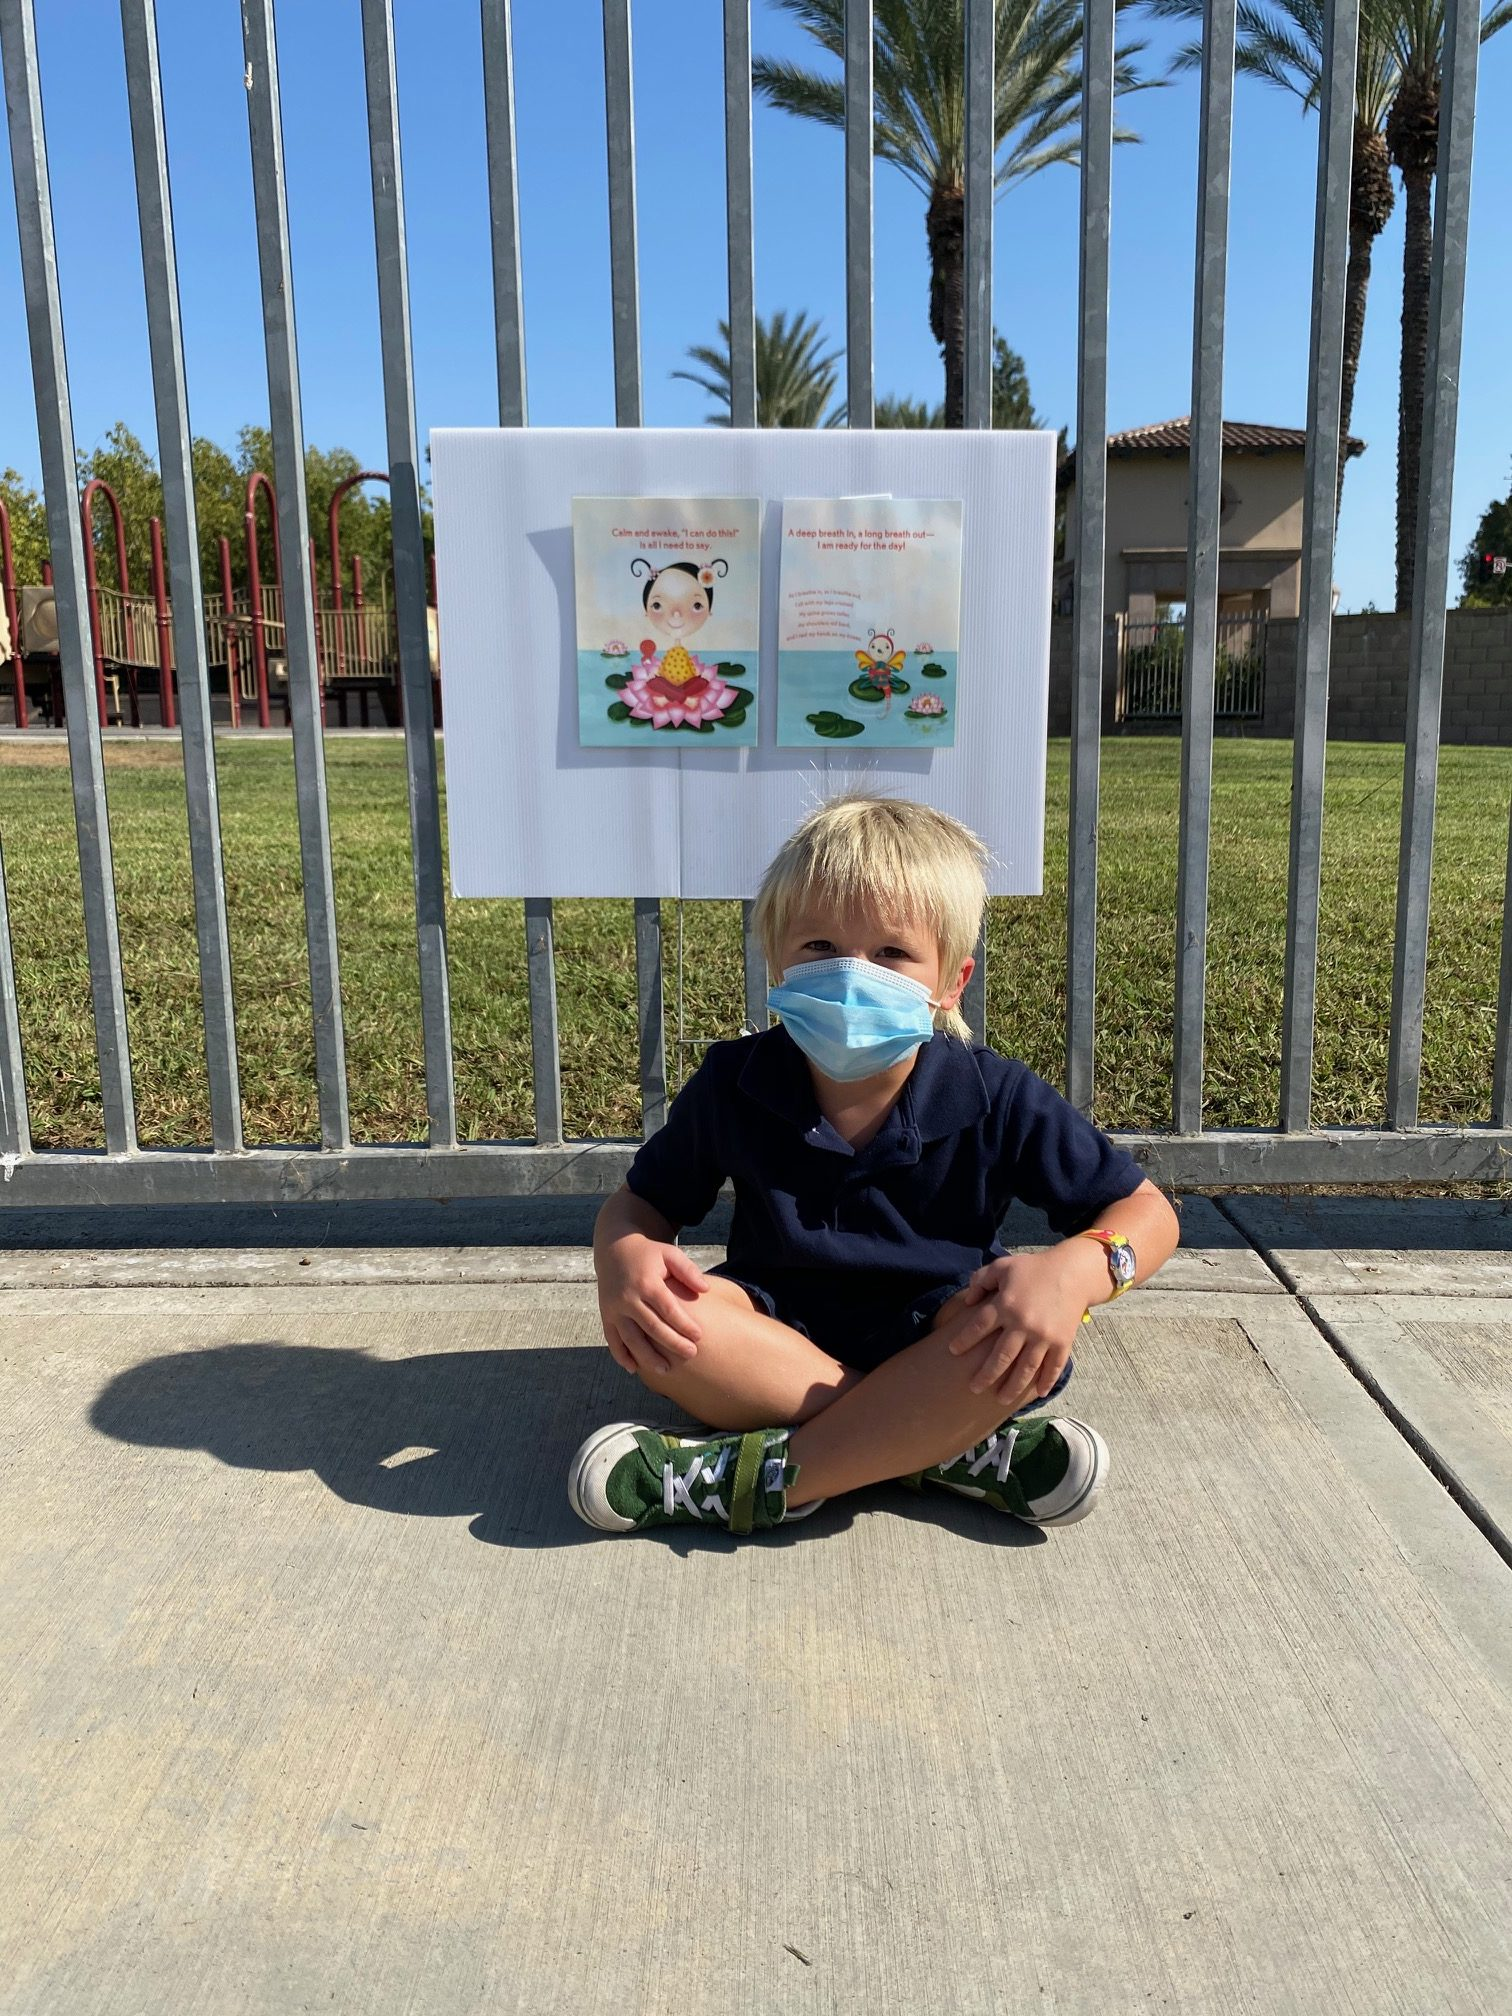 Weekly roundup: Tustin USD teacher creates unique reading experience; vaccines for educators; and more